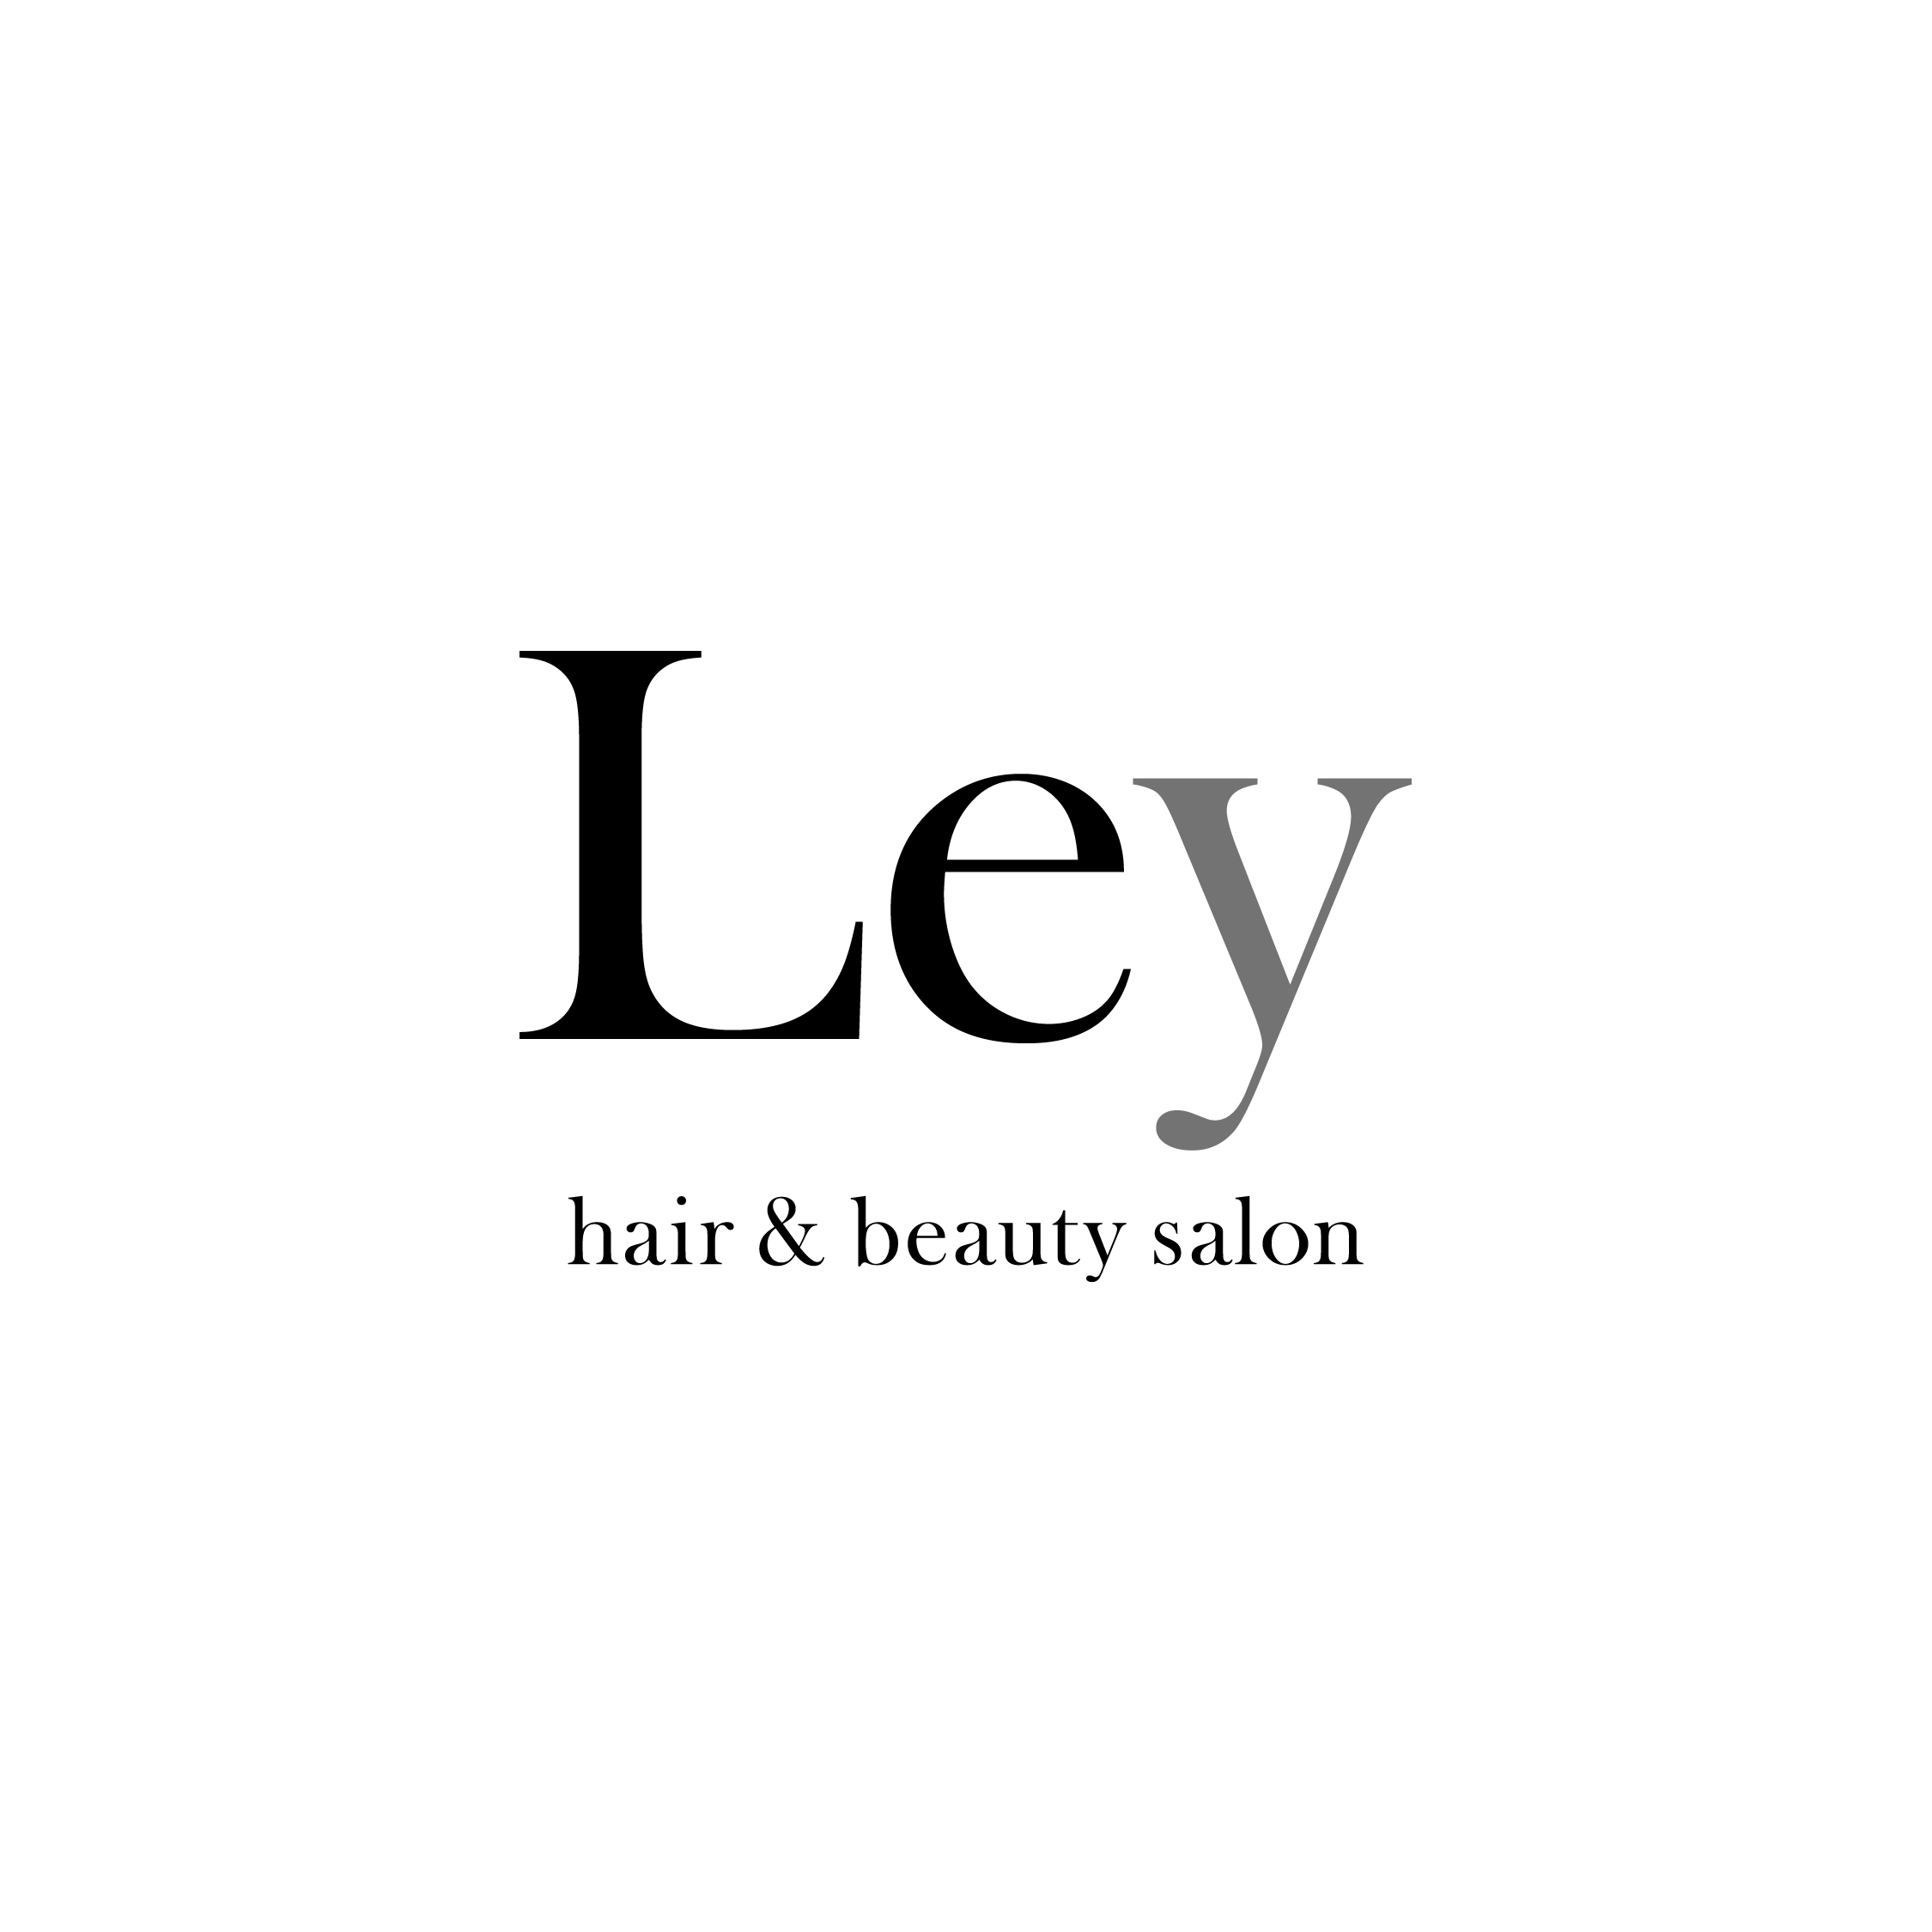 Hair and Beauty Salon Ley|Identity CI, Graphics, Sign ロゴ|グラフィックデザイン|横浜市